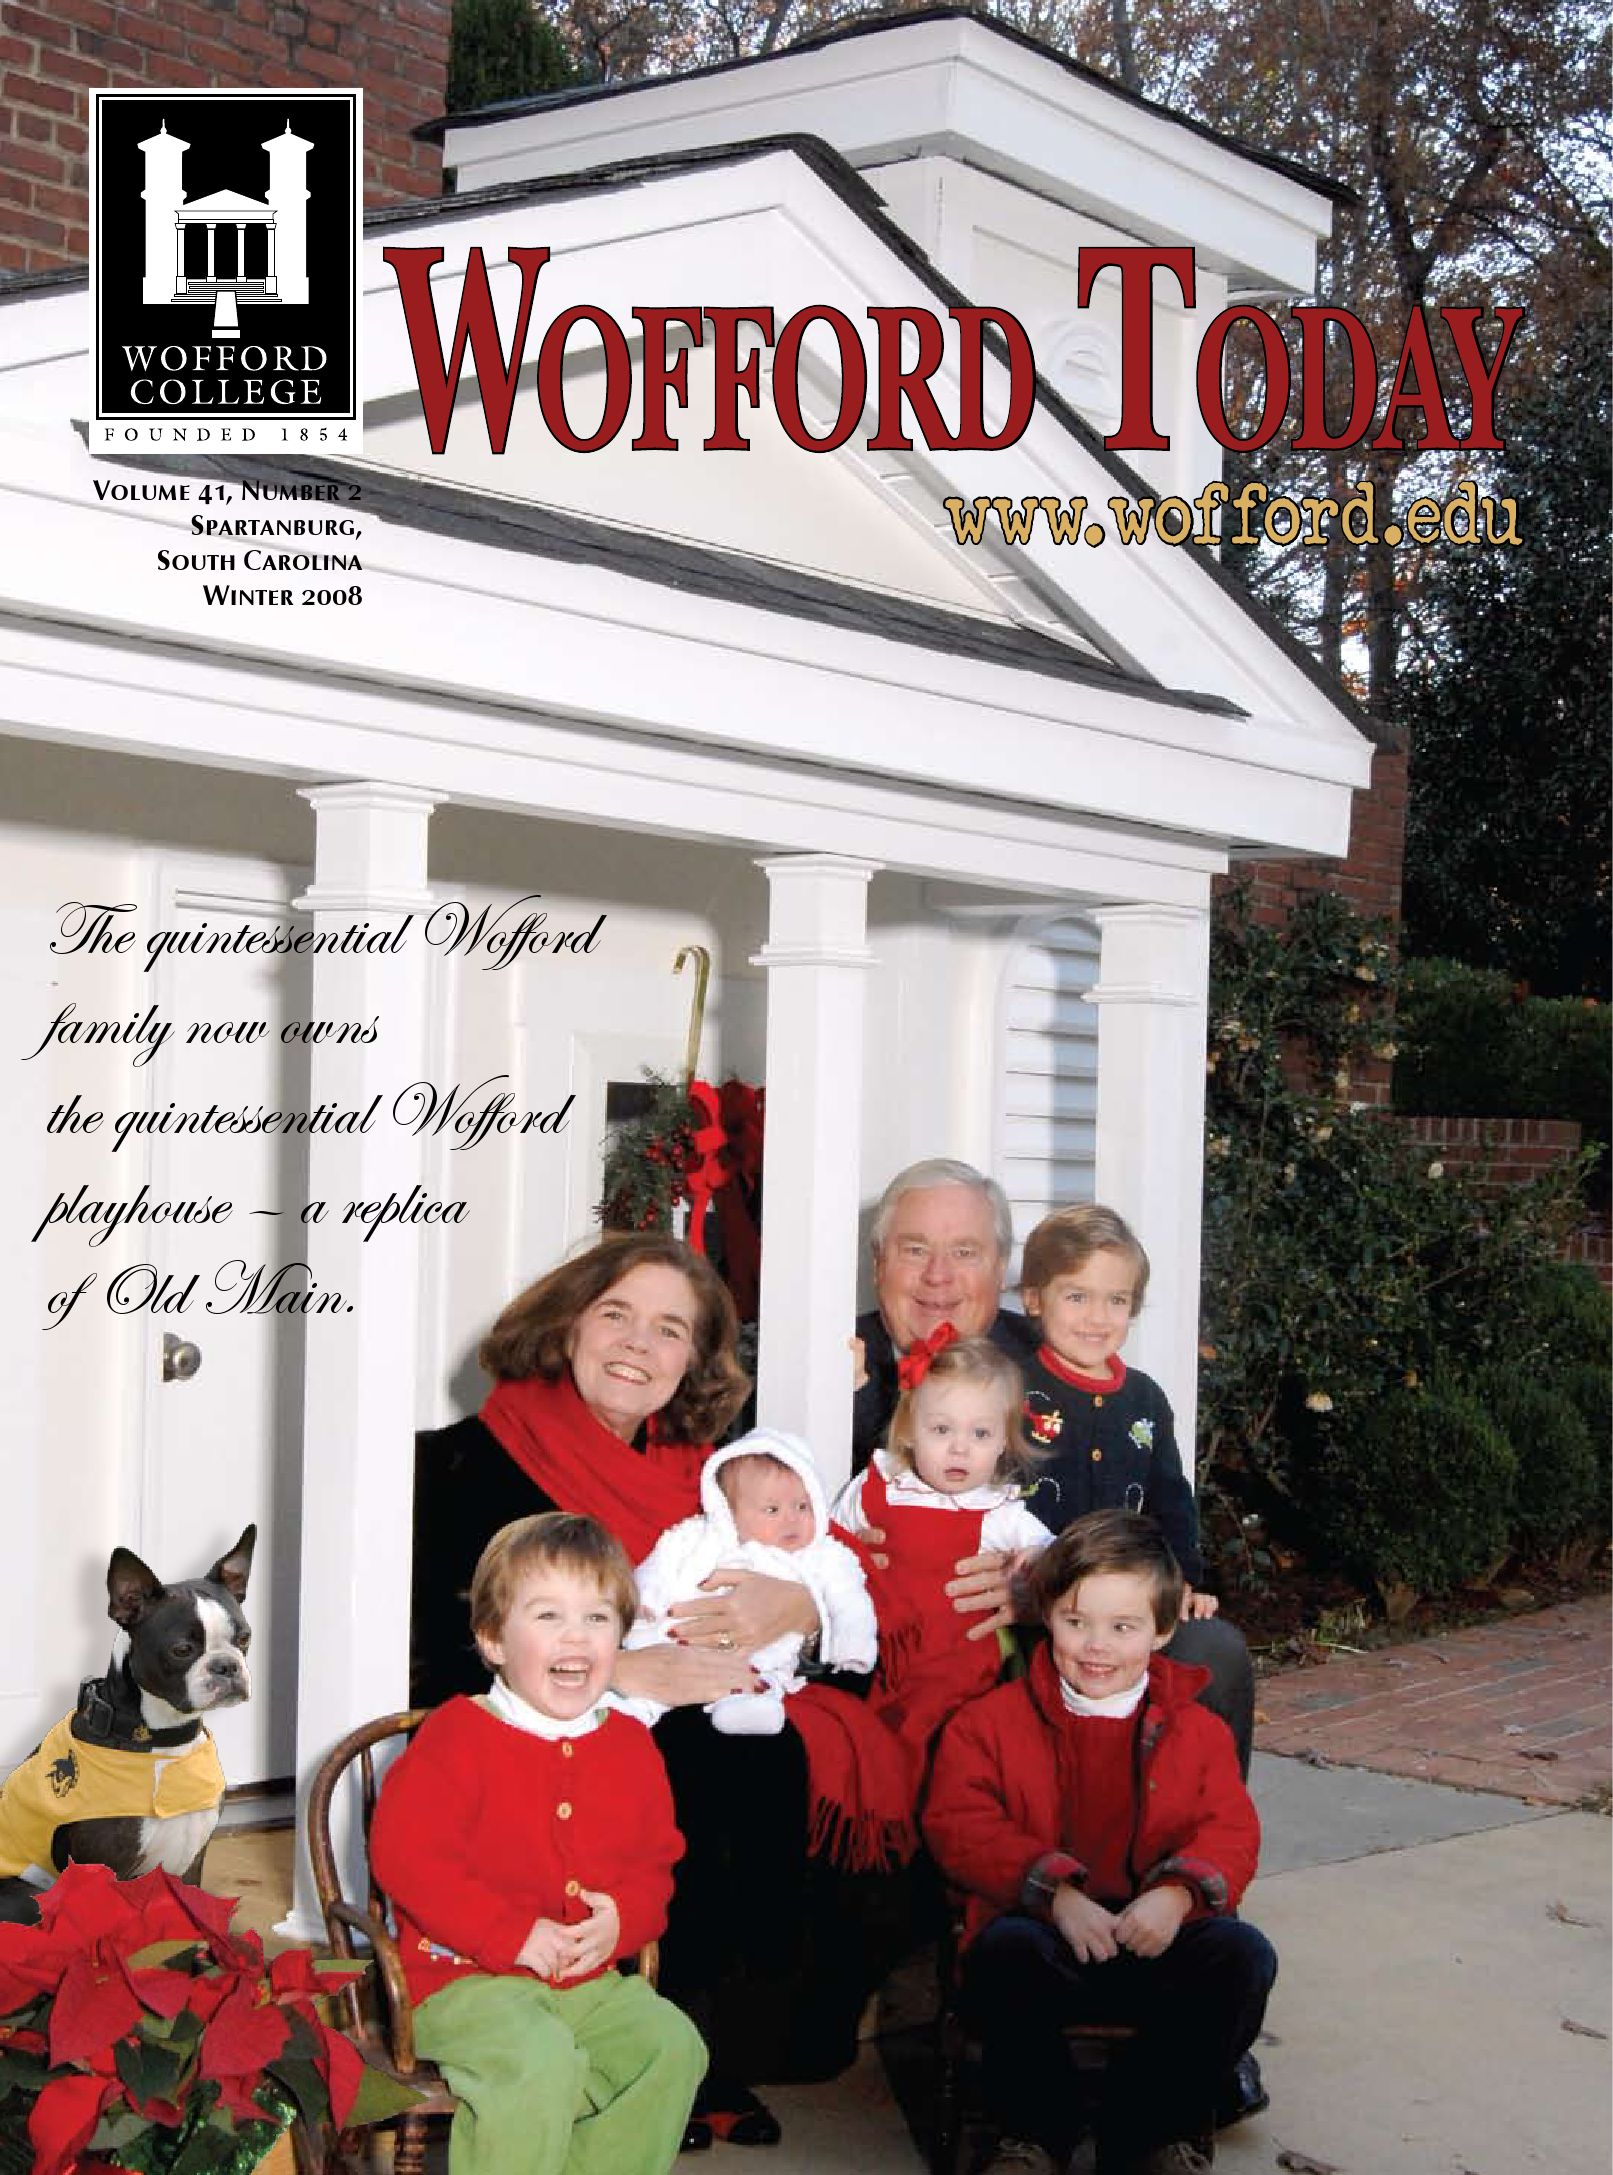 wofford today winter 08 by wofford college issuu